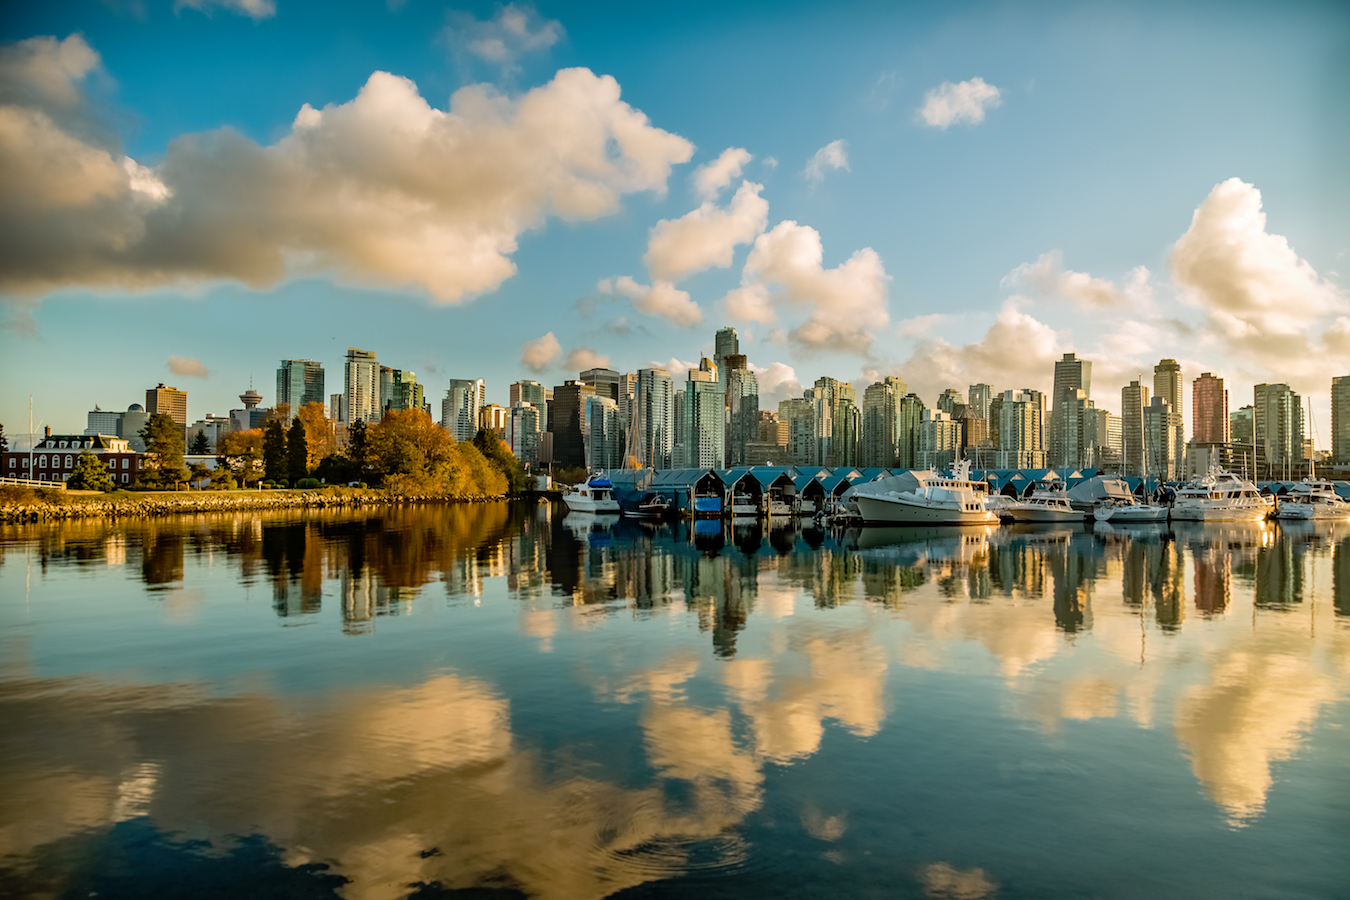 vancouver from the water